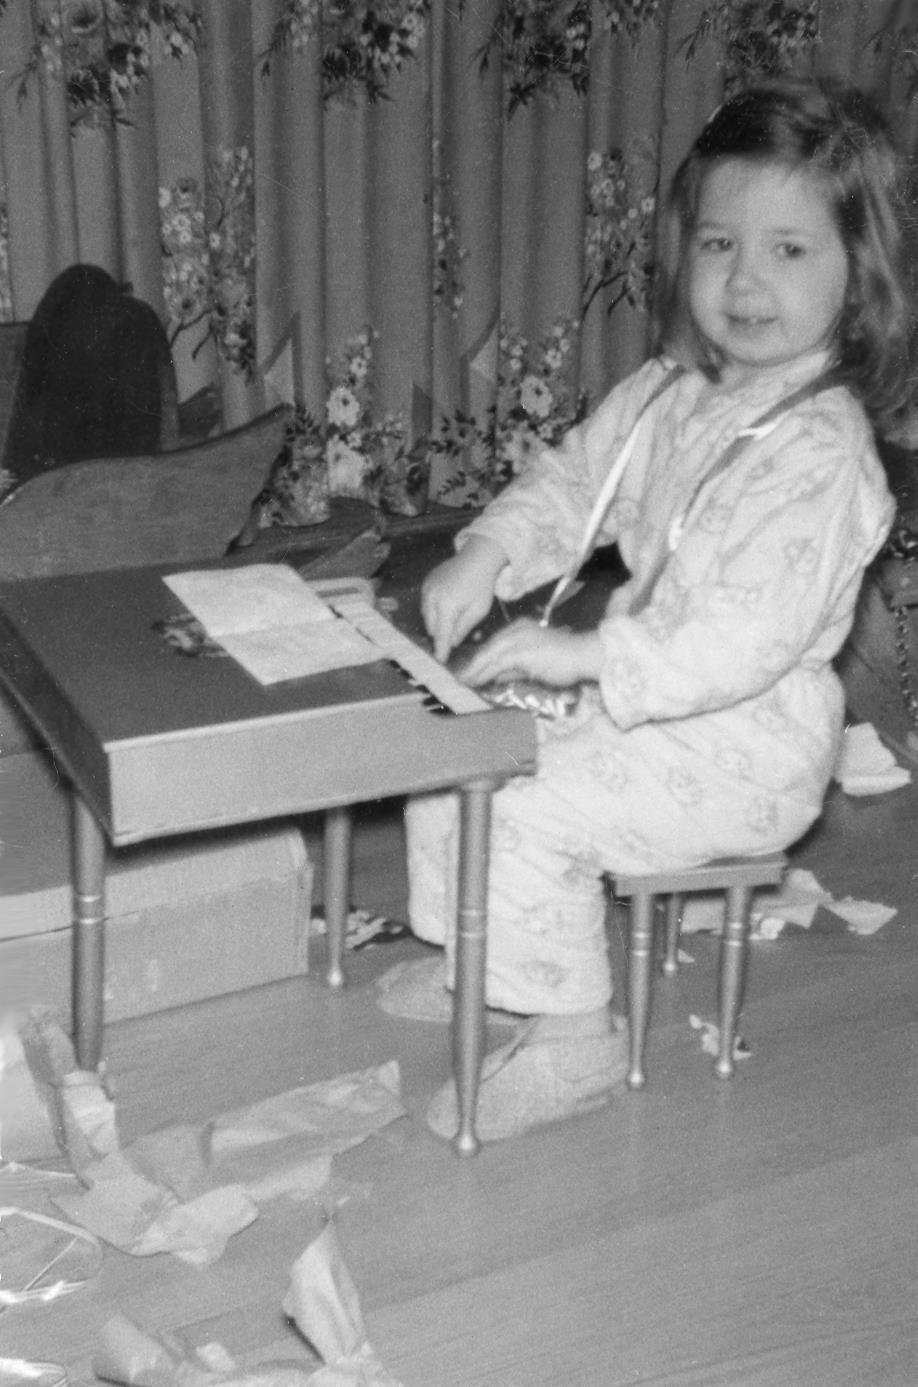 Probably about four, sitting at my toy piano at Christmas